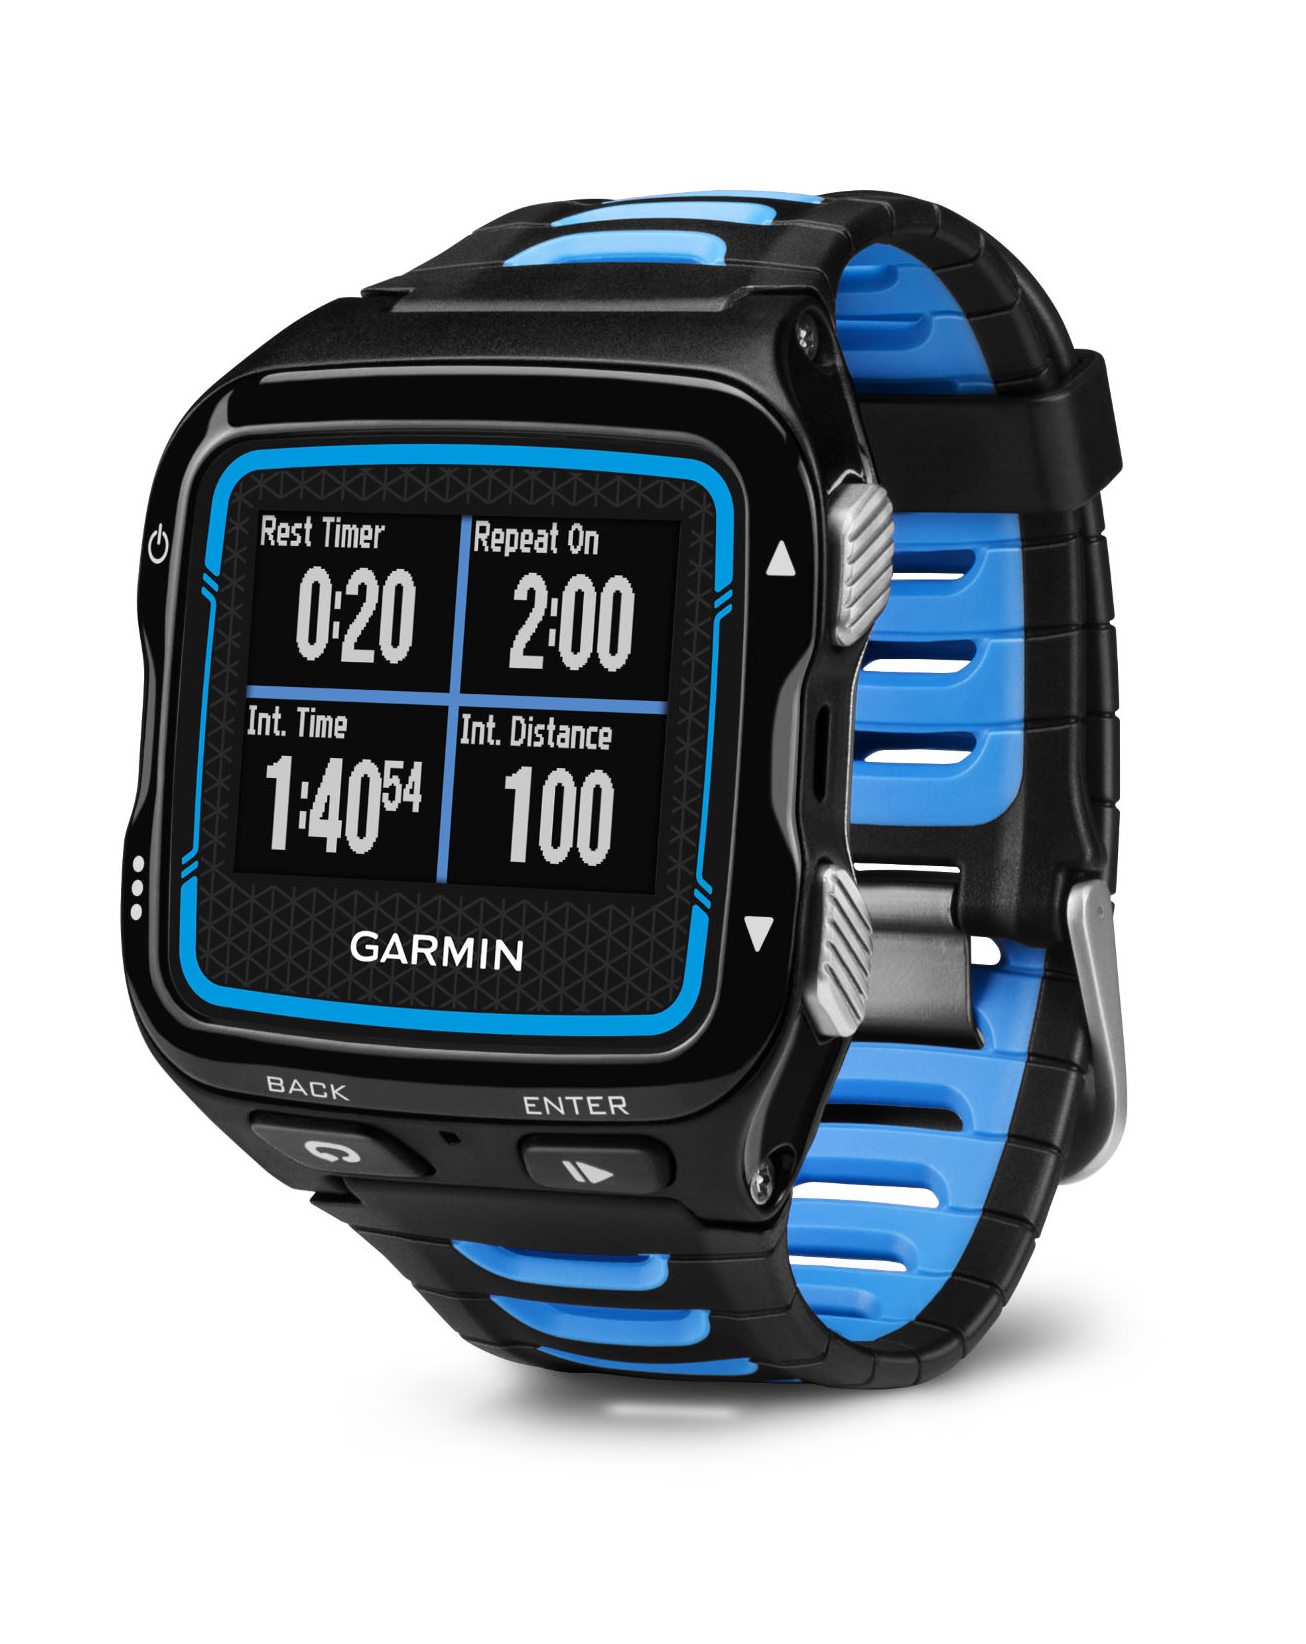 How to Buy from the USA Garmin Online Store - International